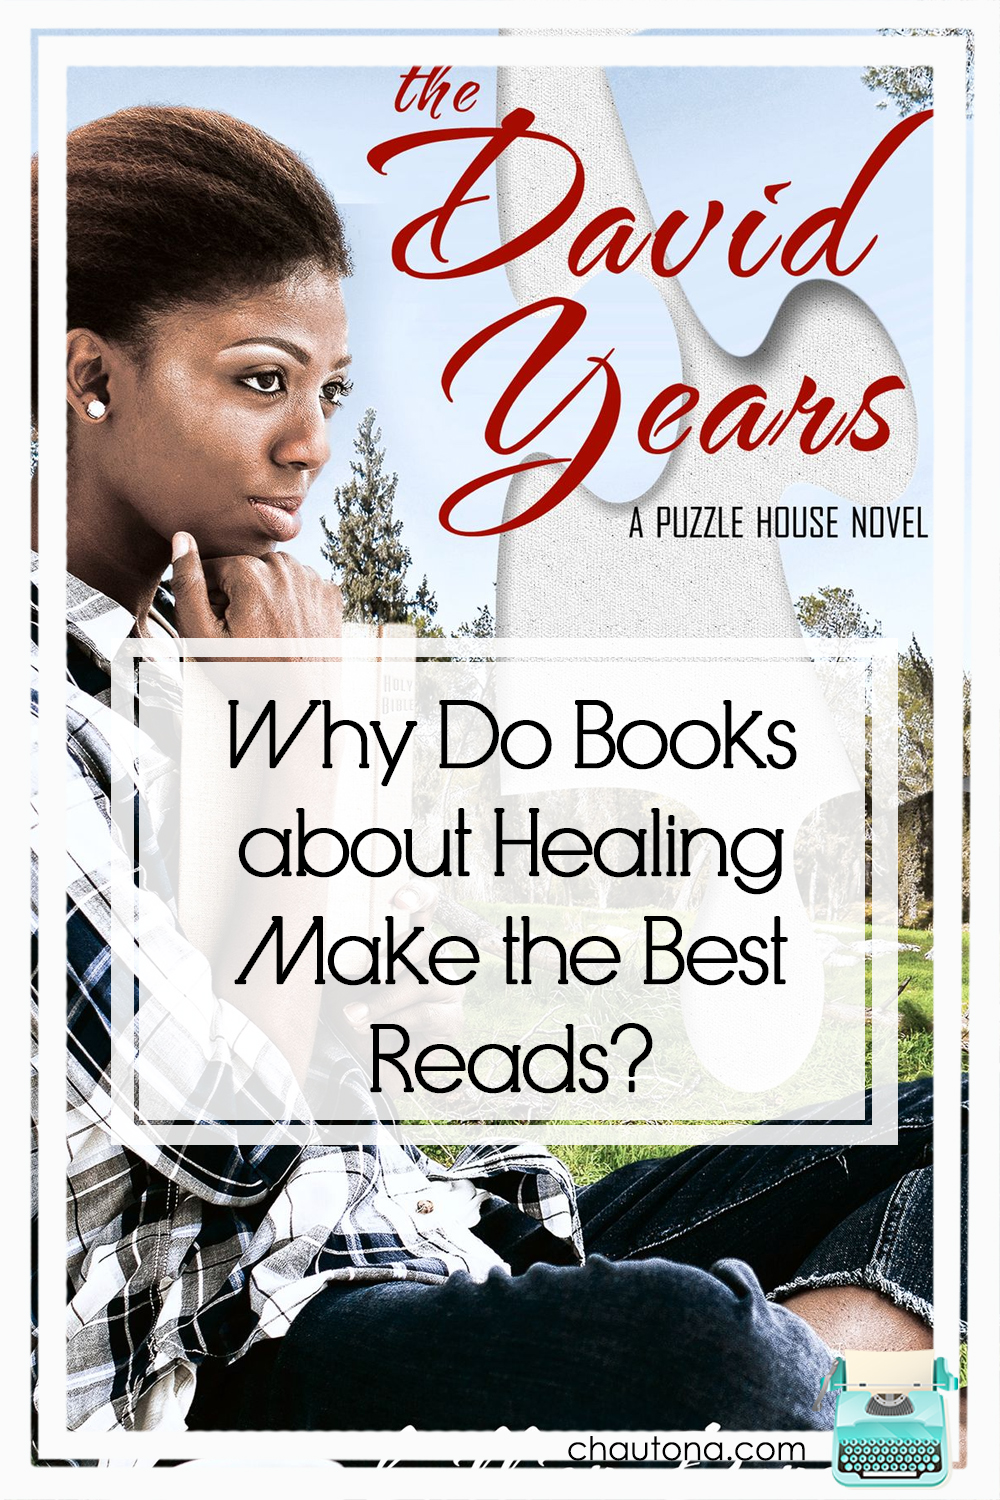 Why Do Books about Healing Make the Best Reads? the david years